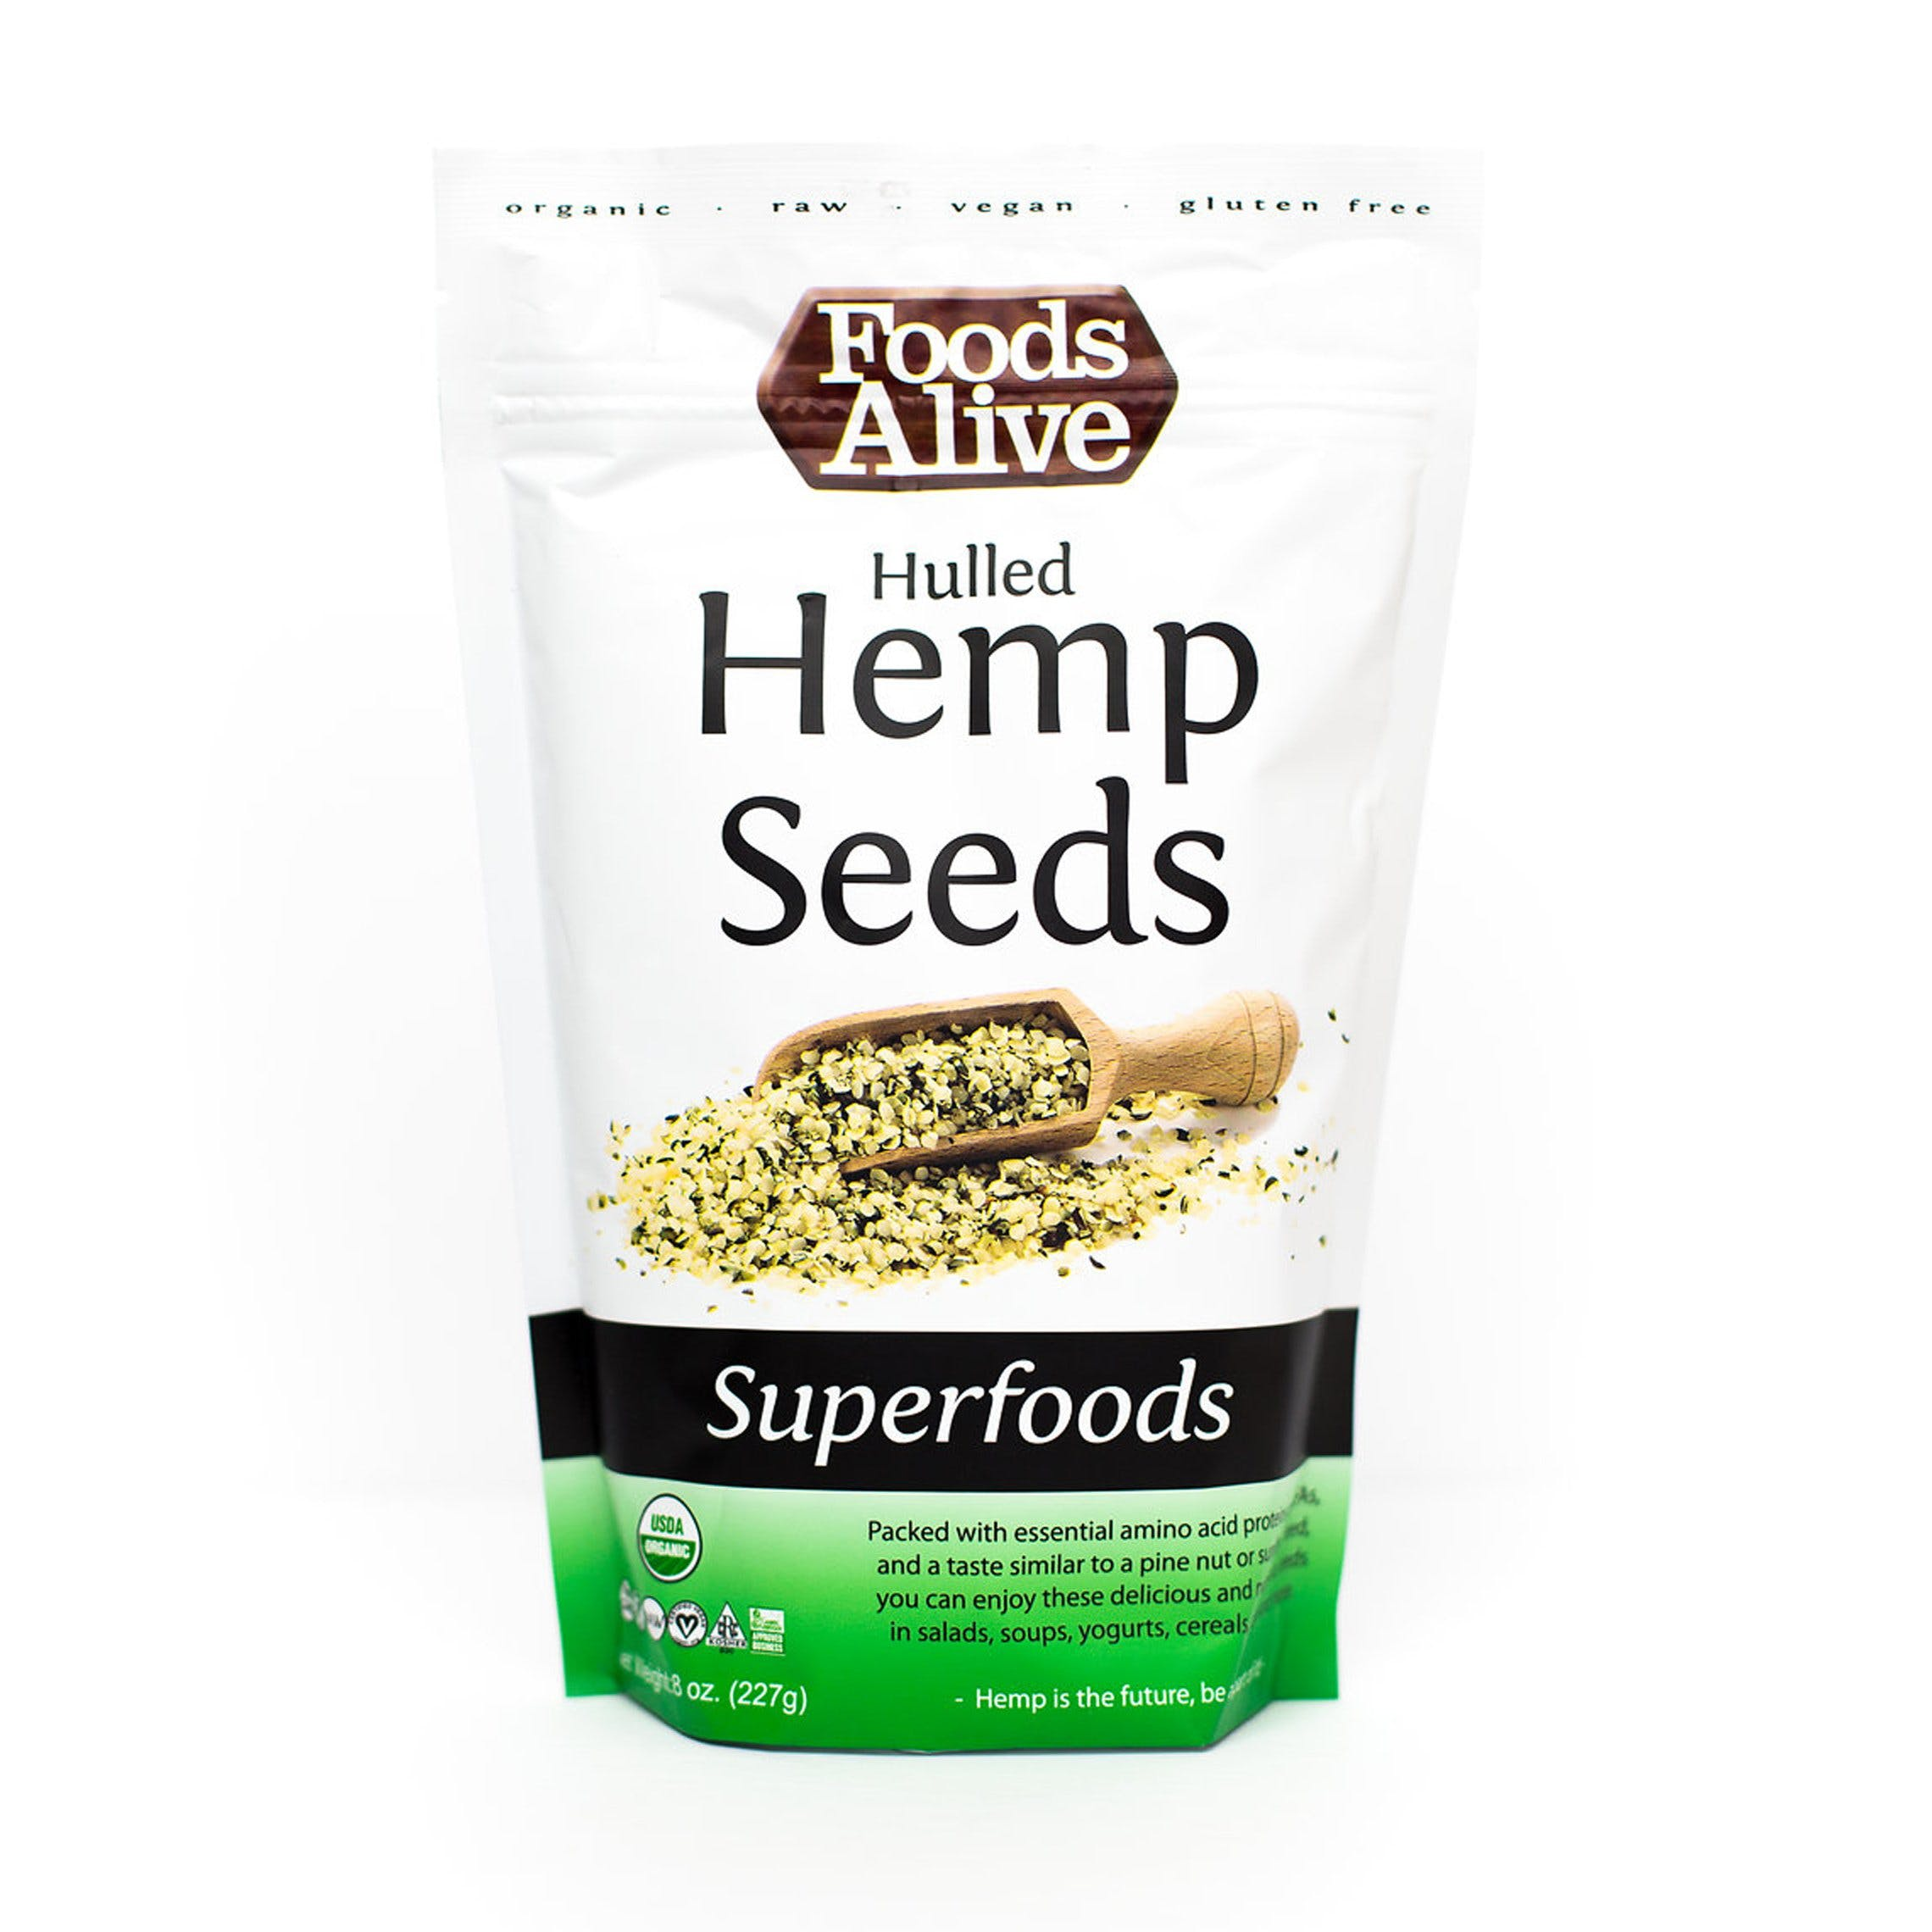 Foods Alive - Hemp Seeds (Hulled)